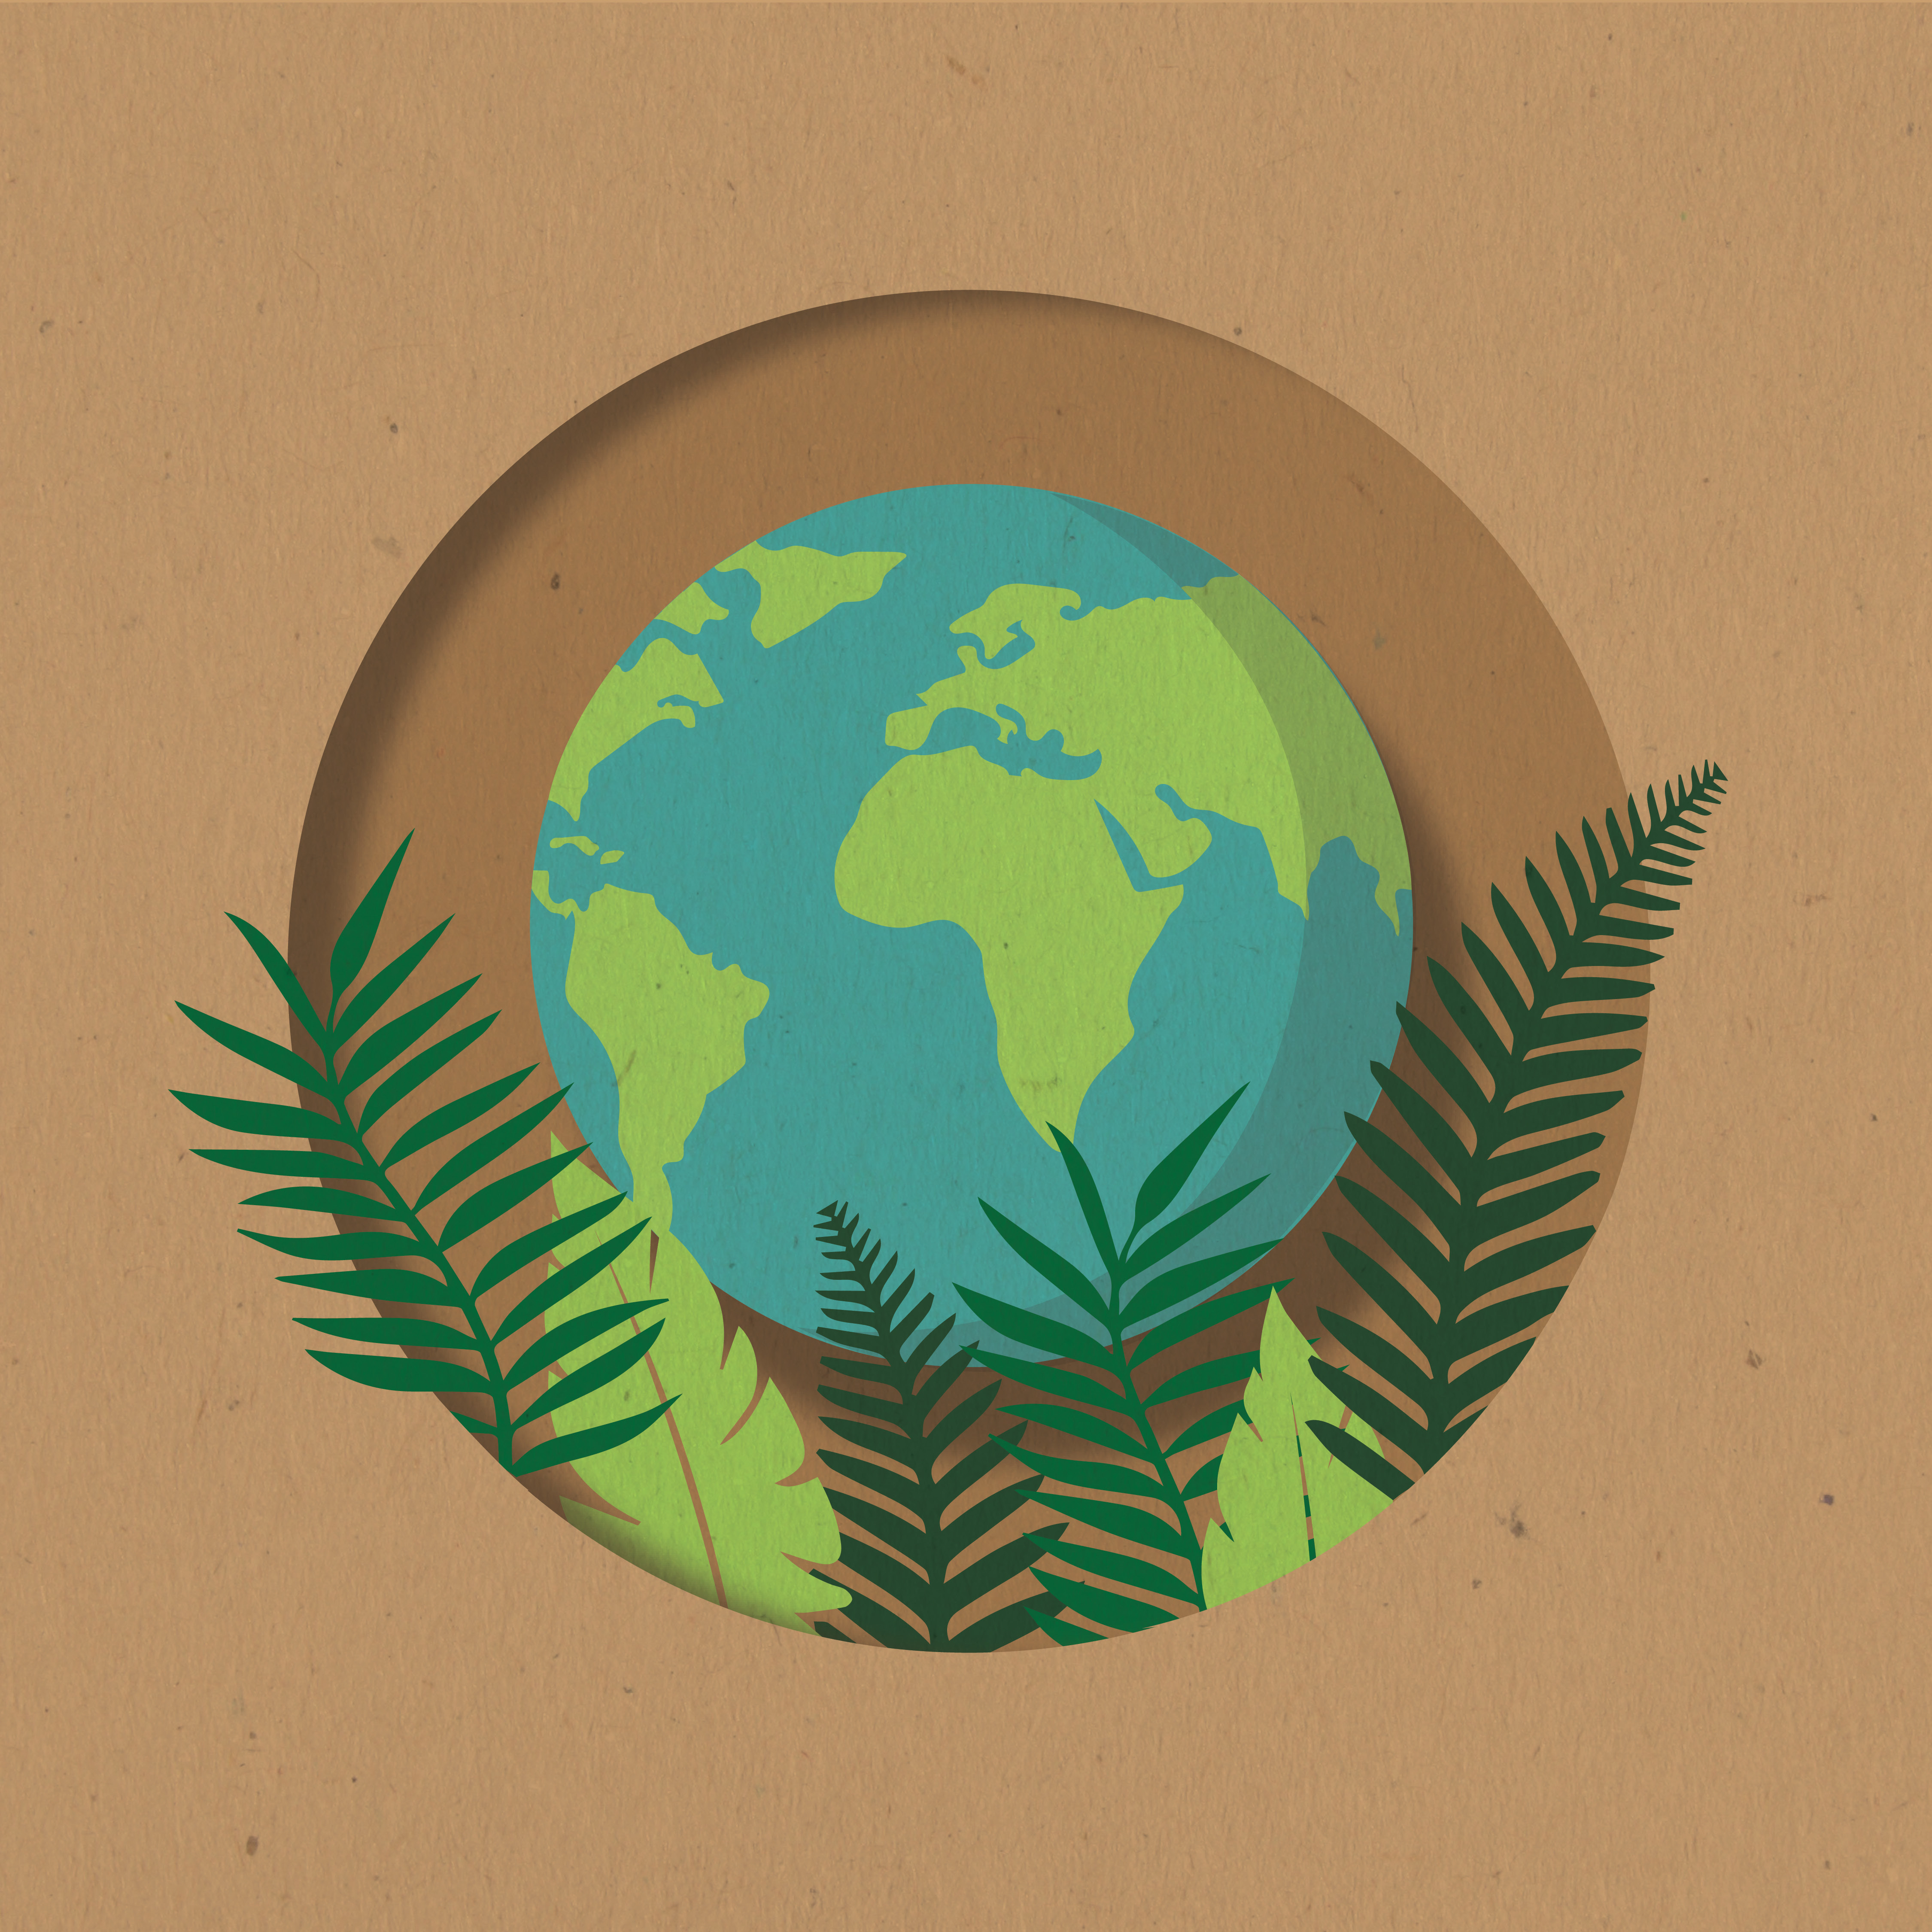 Earth Day Turns 51 this Year!